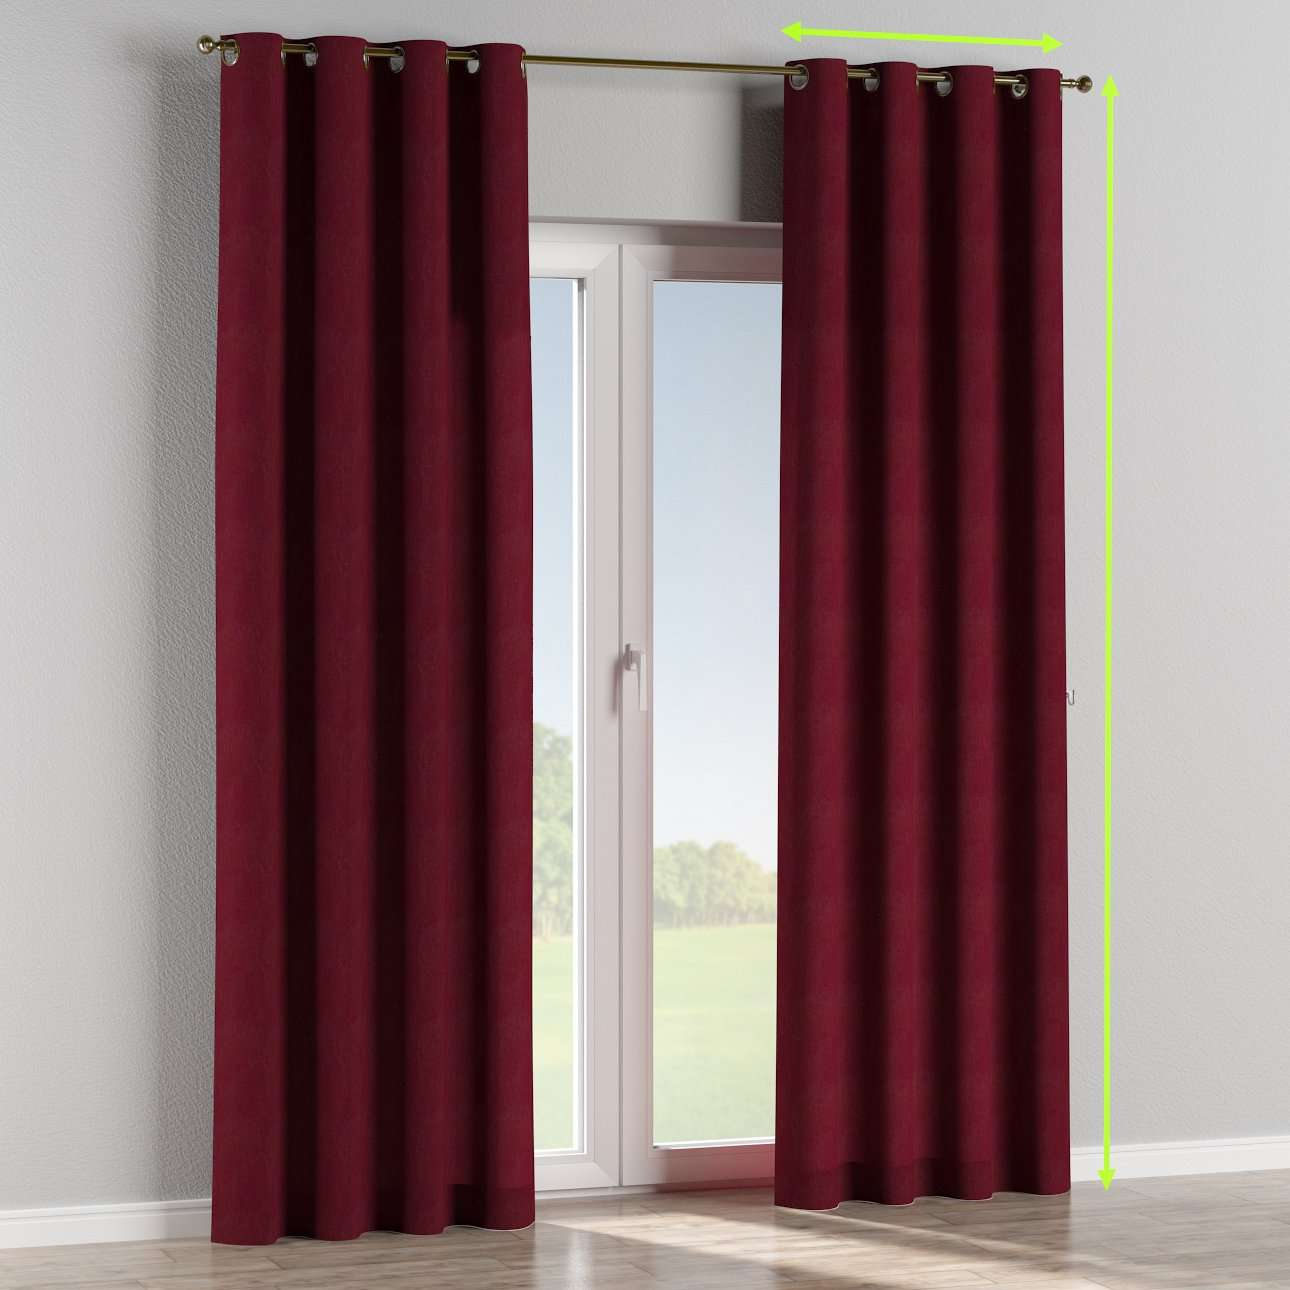 Eyelet lined curtains in collection Chenille, fabric: 702-19